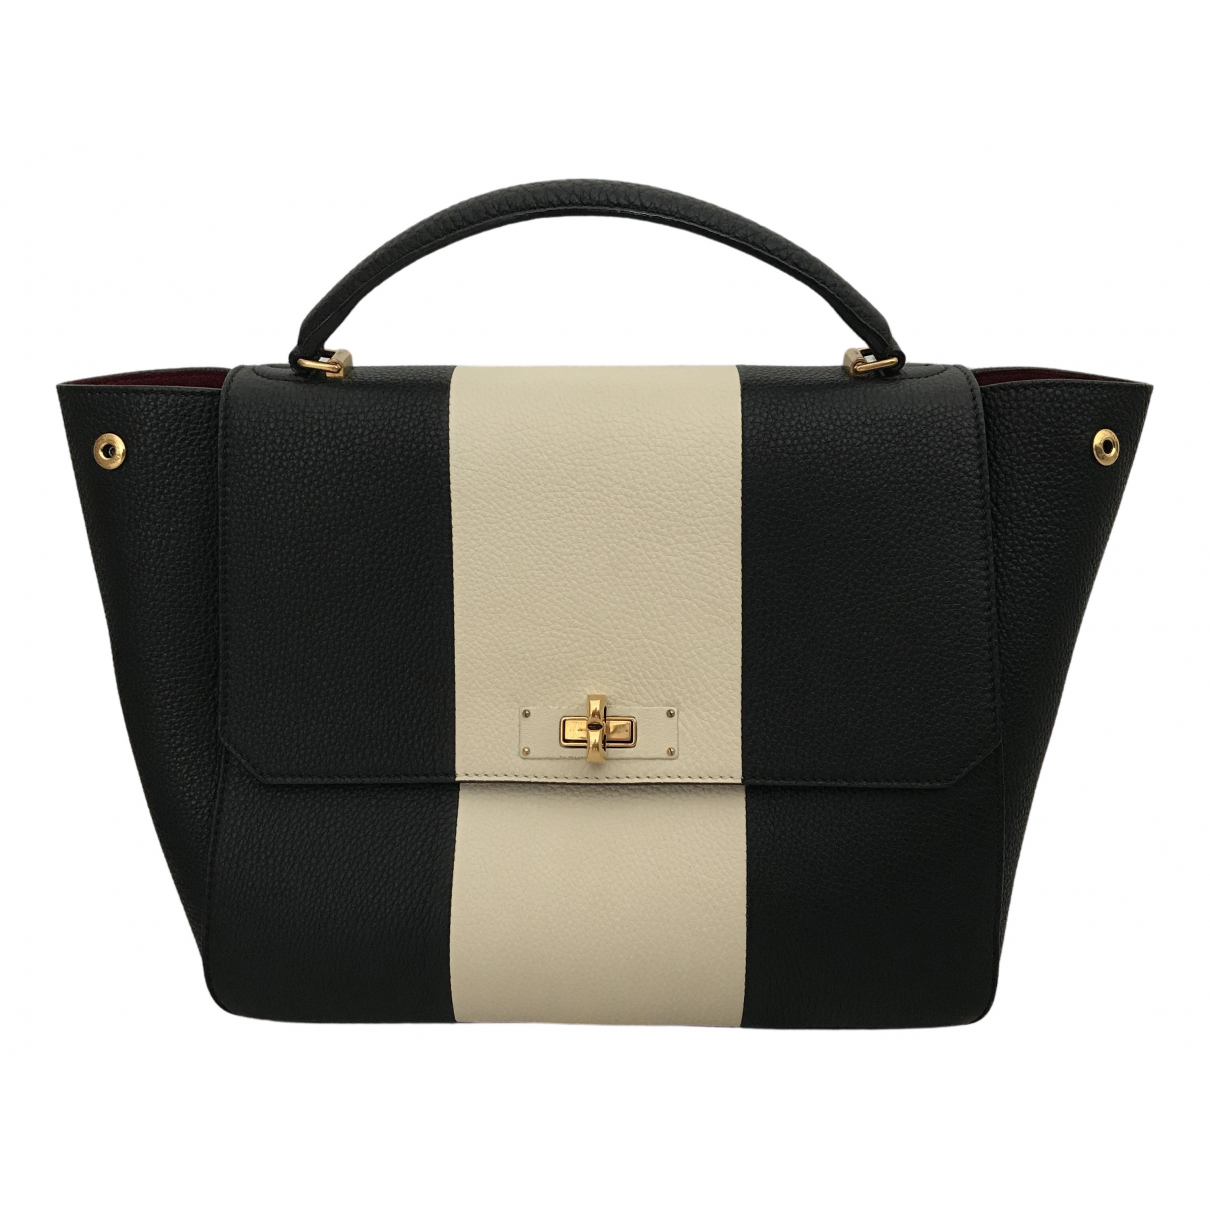 Bally \N Black Leather handbag for Women \N